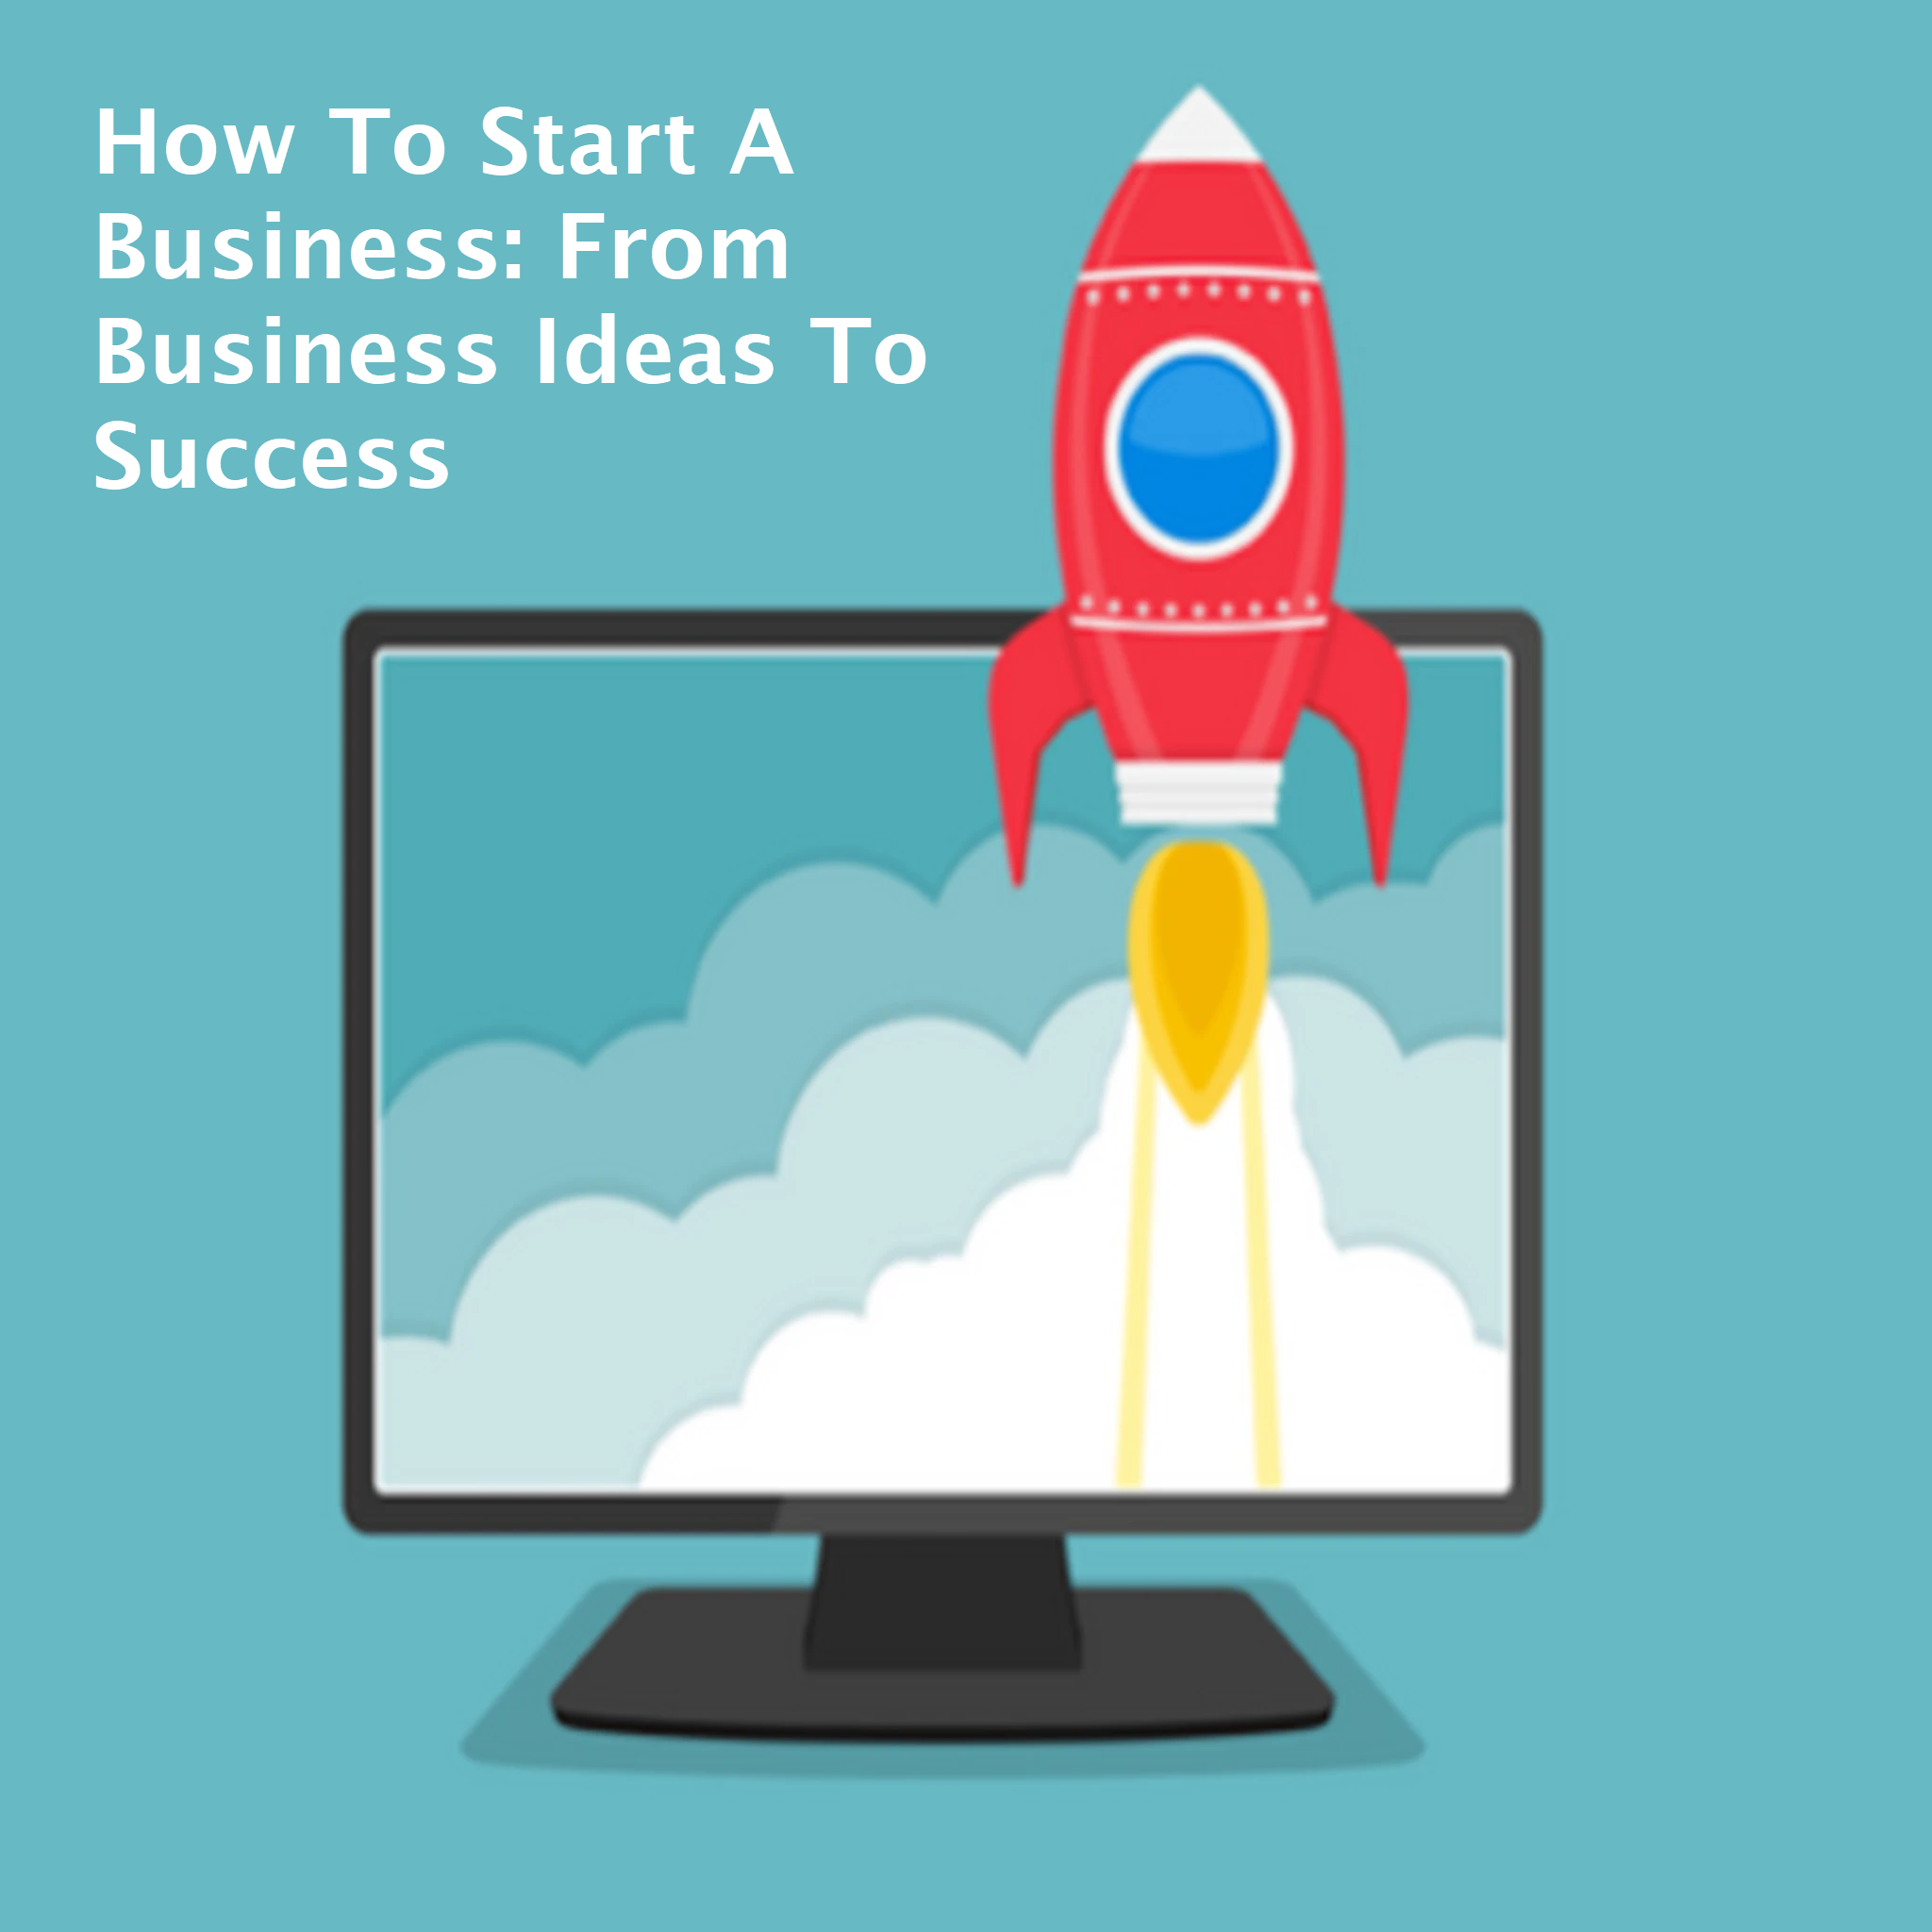 How To Start A Business: From Business Ideas To Success